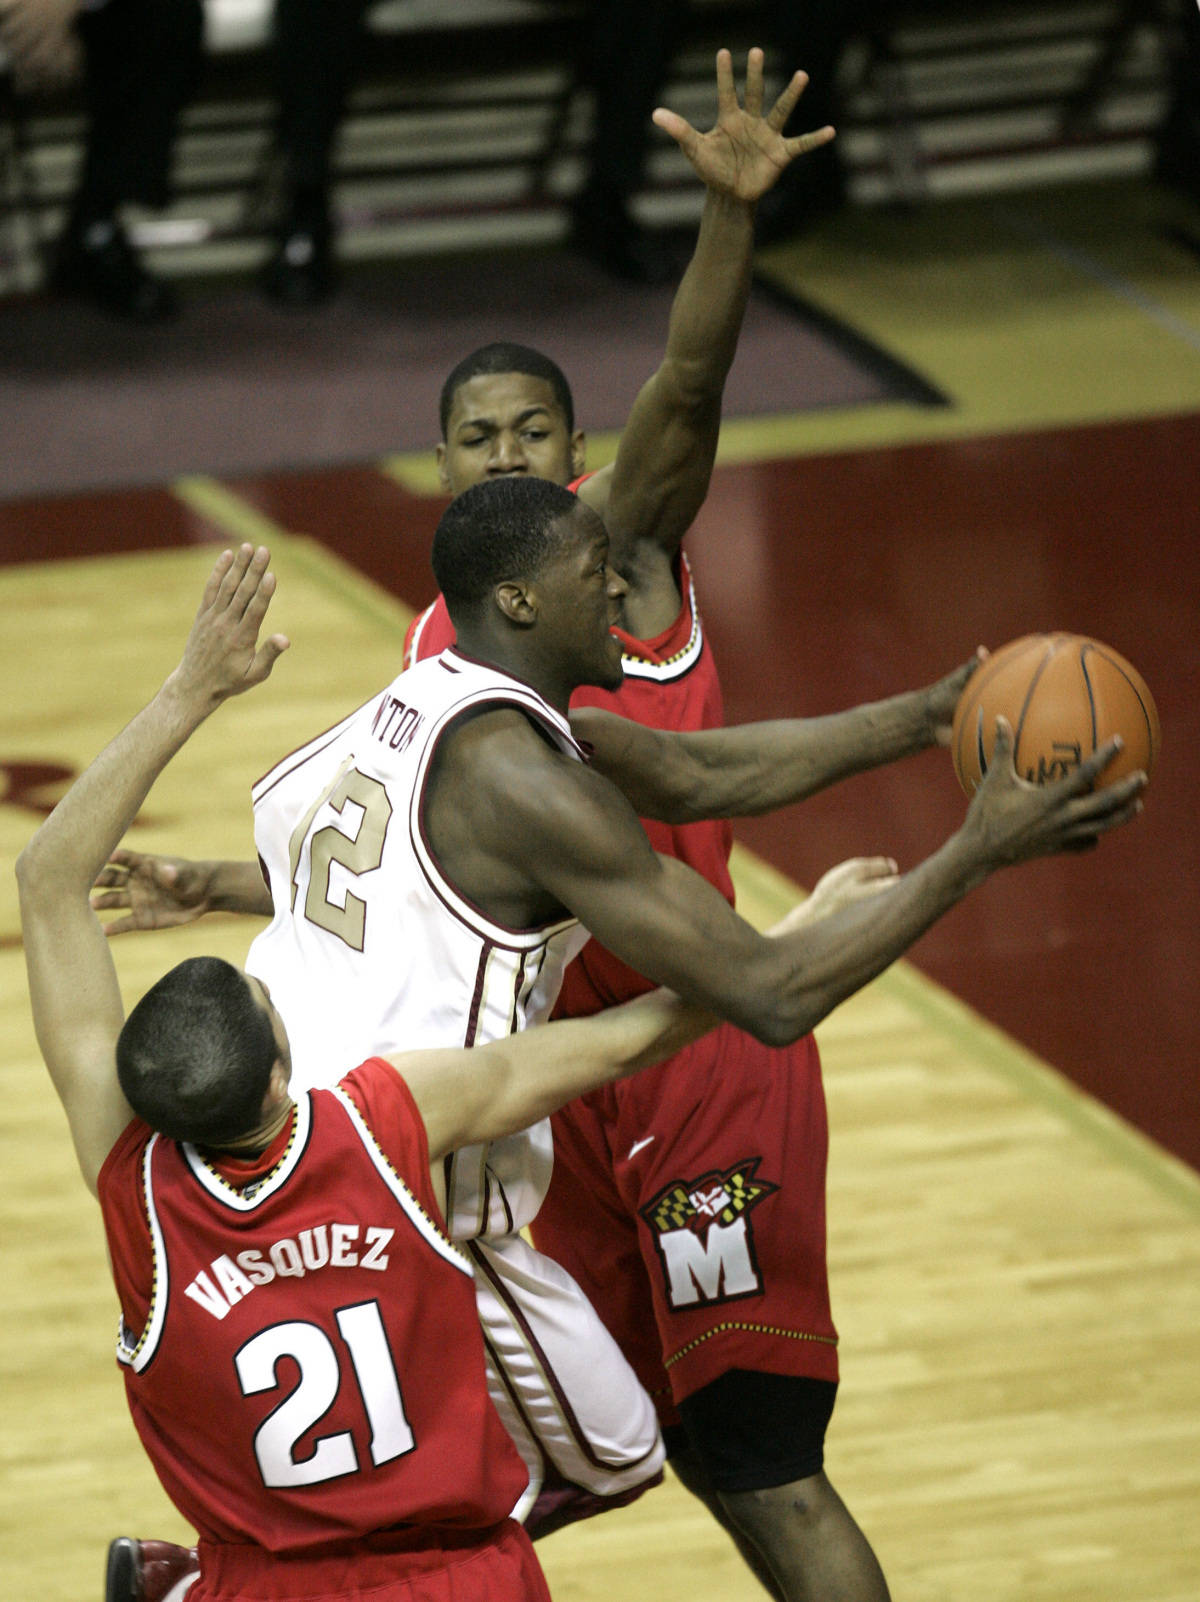 Florida State's Al Thonrton, center, drives for two points between Maryland's D.J. Strawberry, top, and Greivis Vasquez (21) during the second half of their college basketball game Tuesday, Jan. 30, 2007, in Tallahassee, Fla. Florida State won 96-79. (AP Photo/Phil Coale)